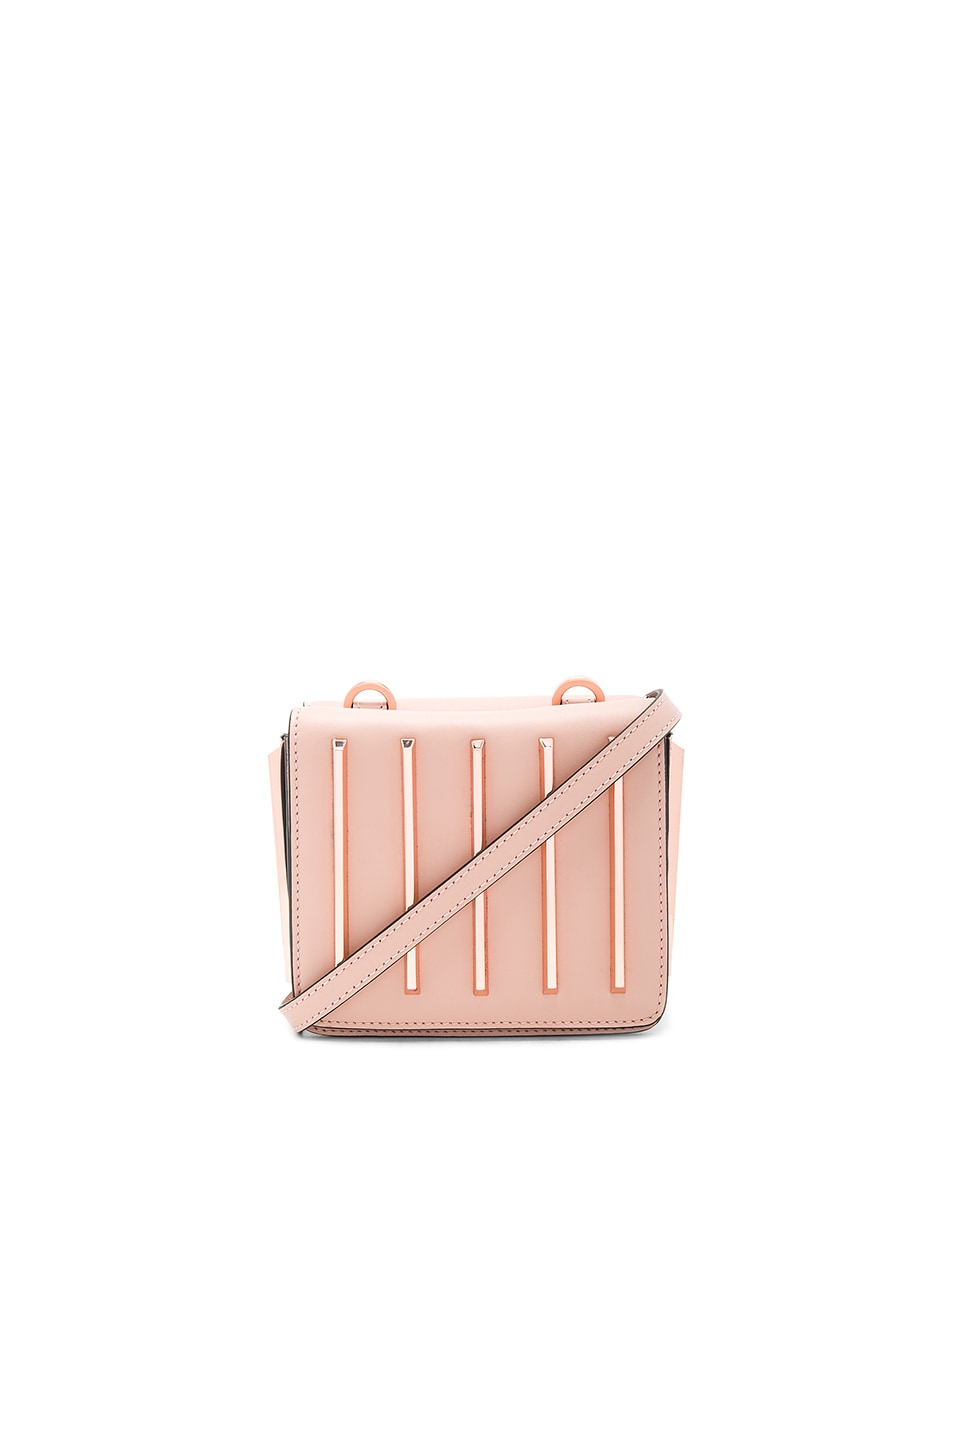 KENDALL + KYLIE Baxter Crossbody Bag in Rose Cloud